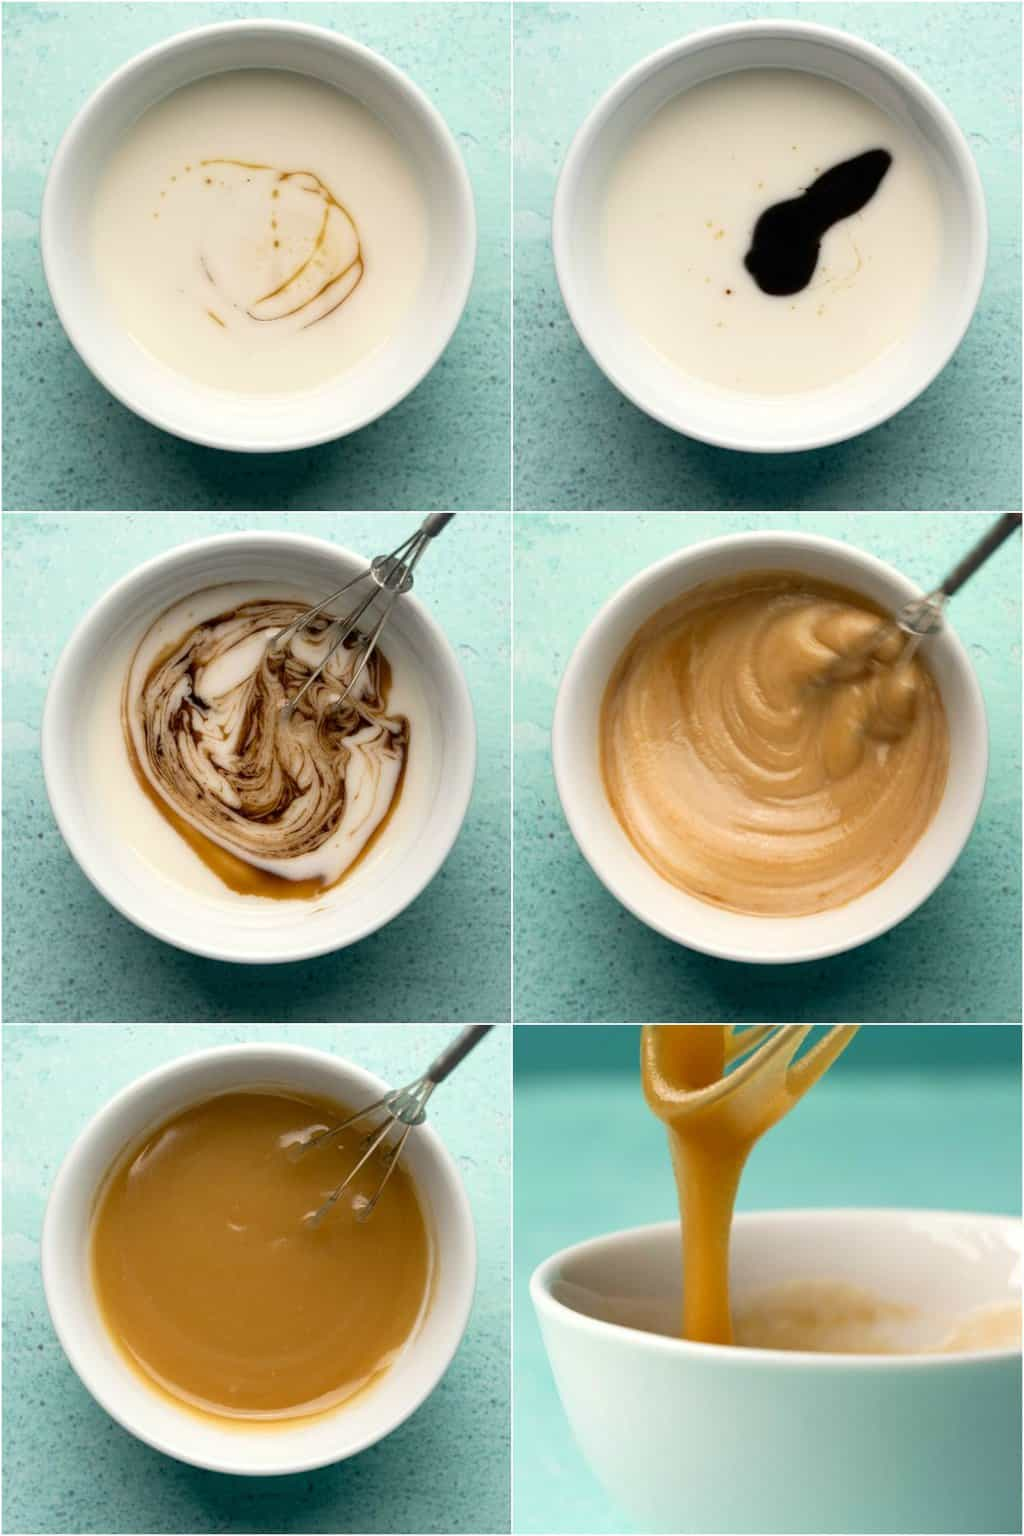 Step by step process photo collage of making vegan caramel sauce.